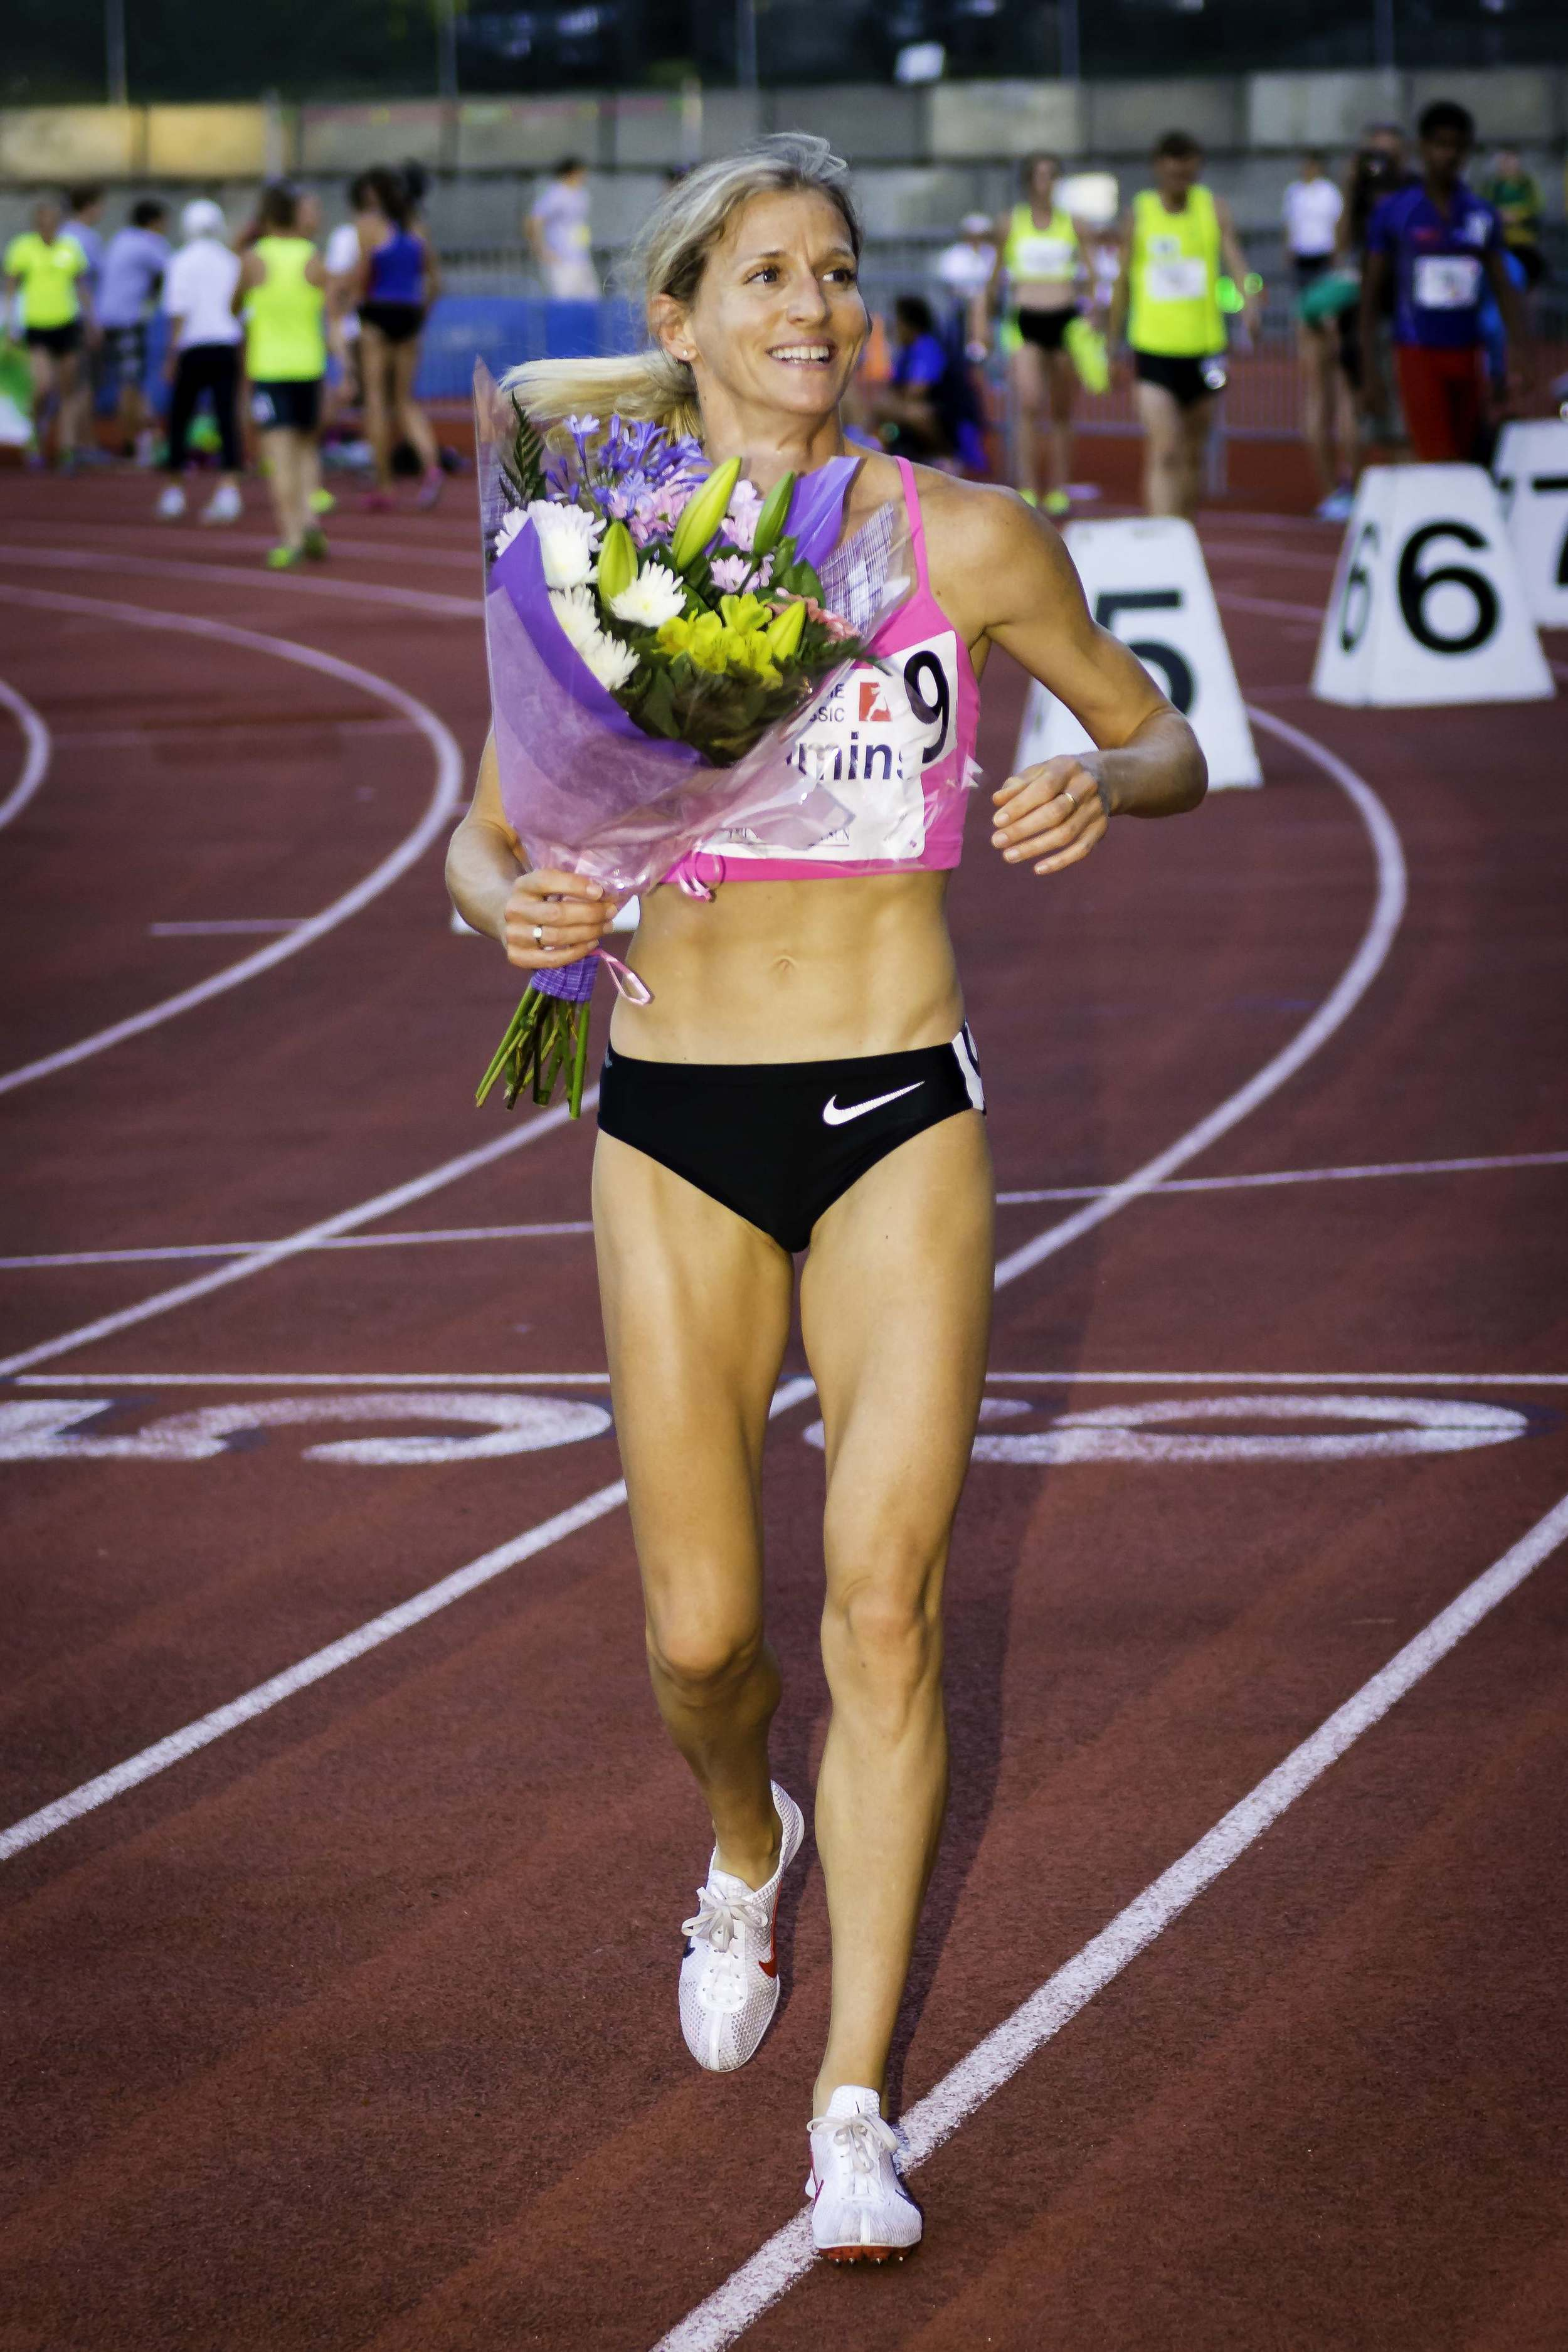 Diane Cummins retires after 18 year career and ten national titles in 800m